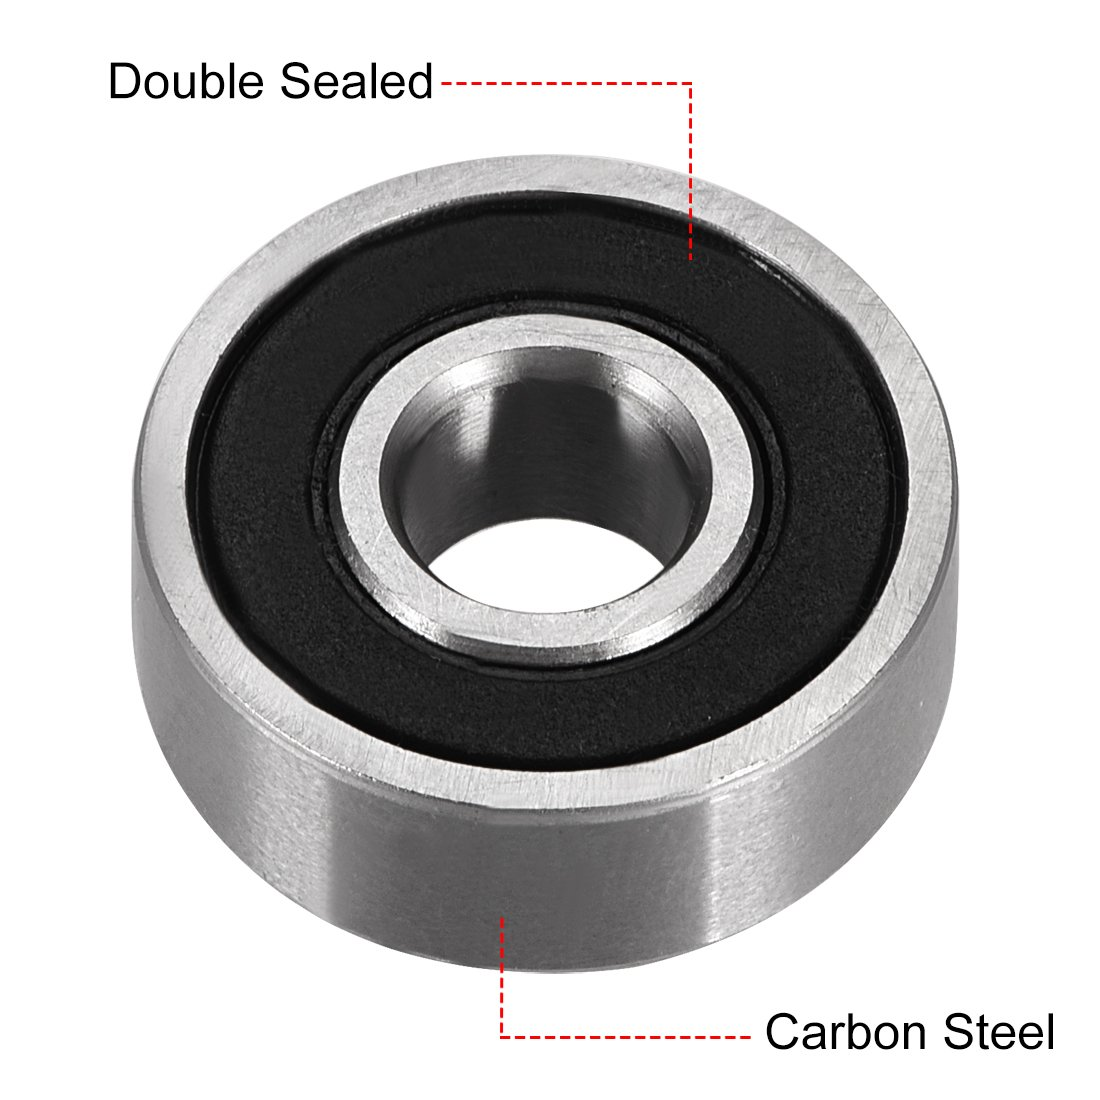 sourcing map 604ZZ Deep Groove Ball Bearing Double Shield 604-2Z 80014 4mm x 12mm x 4mm Carbon Steel Bearings Pack of 8